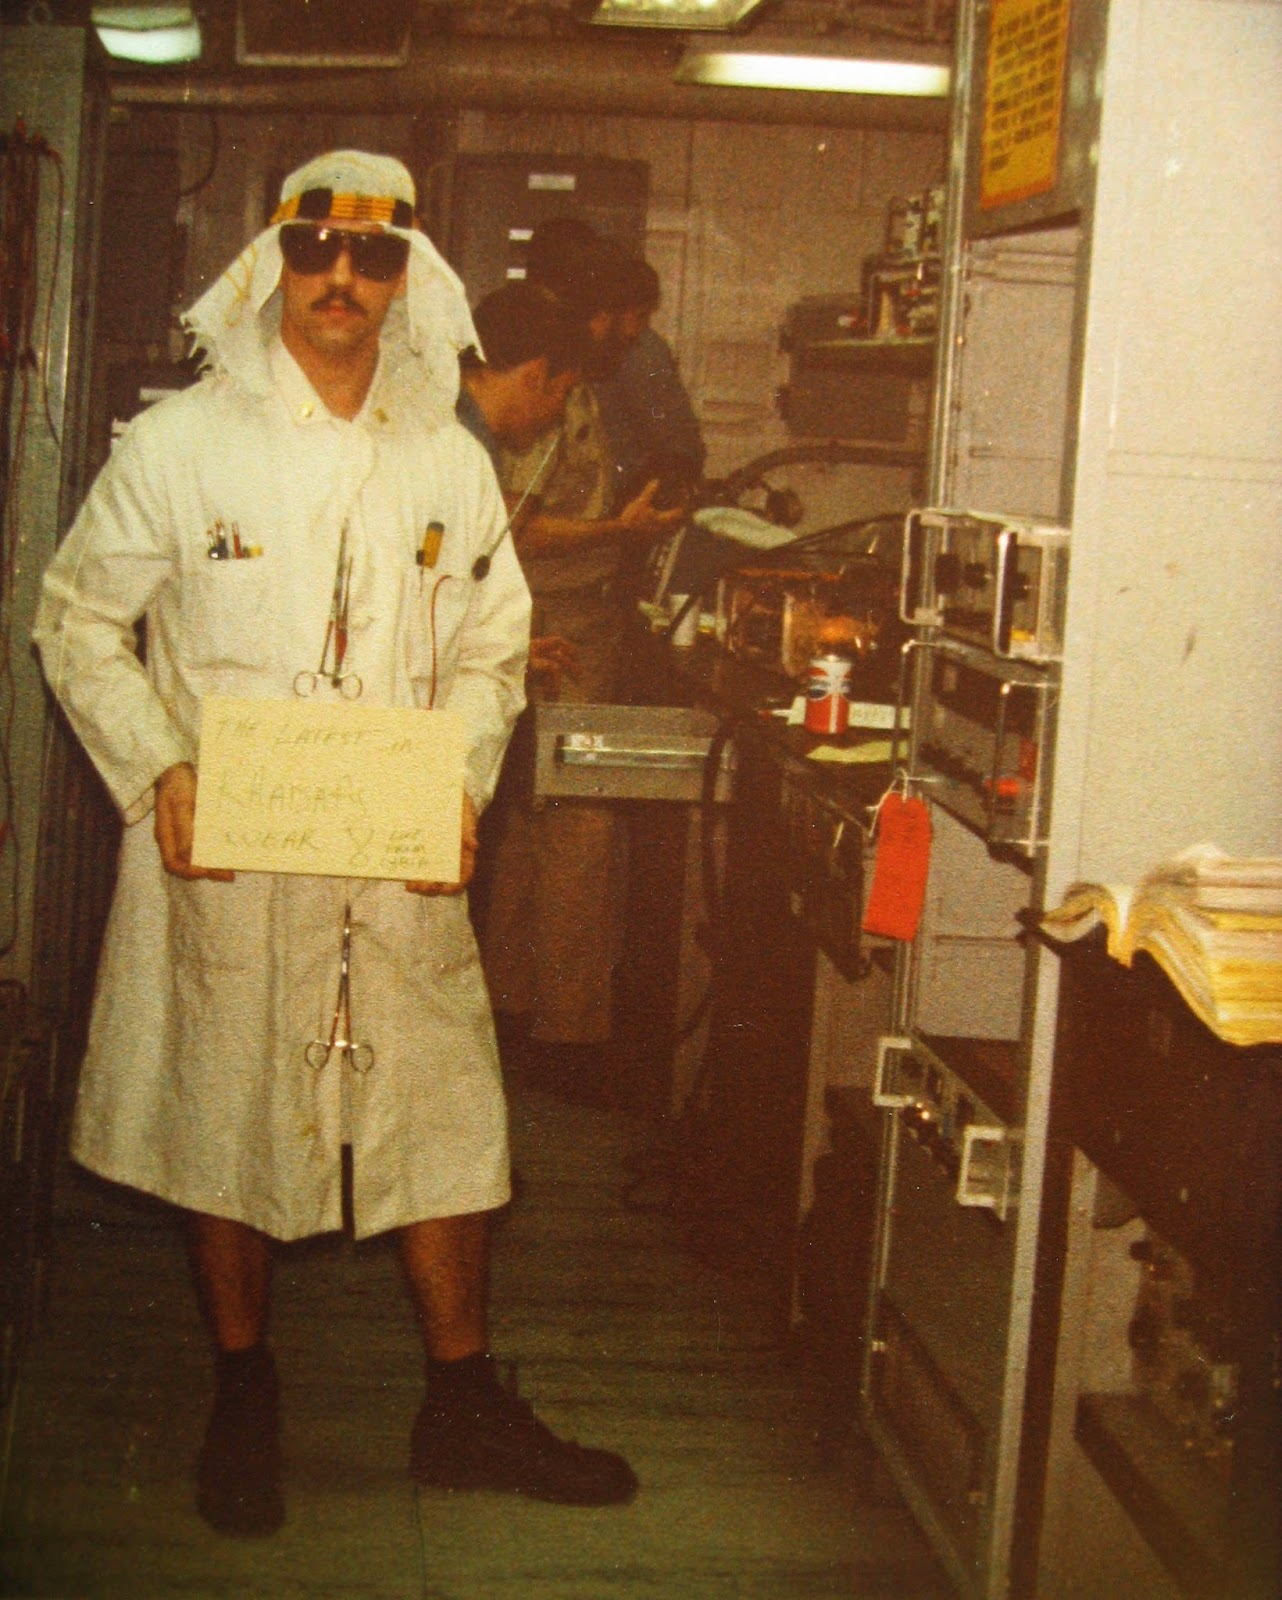 That's Jeff S. displaying the latest in Khadafy Wear on board Nimitz 1983